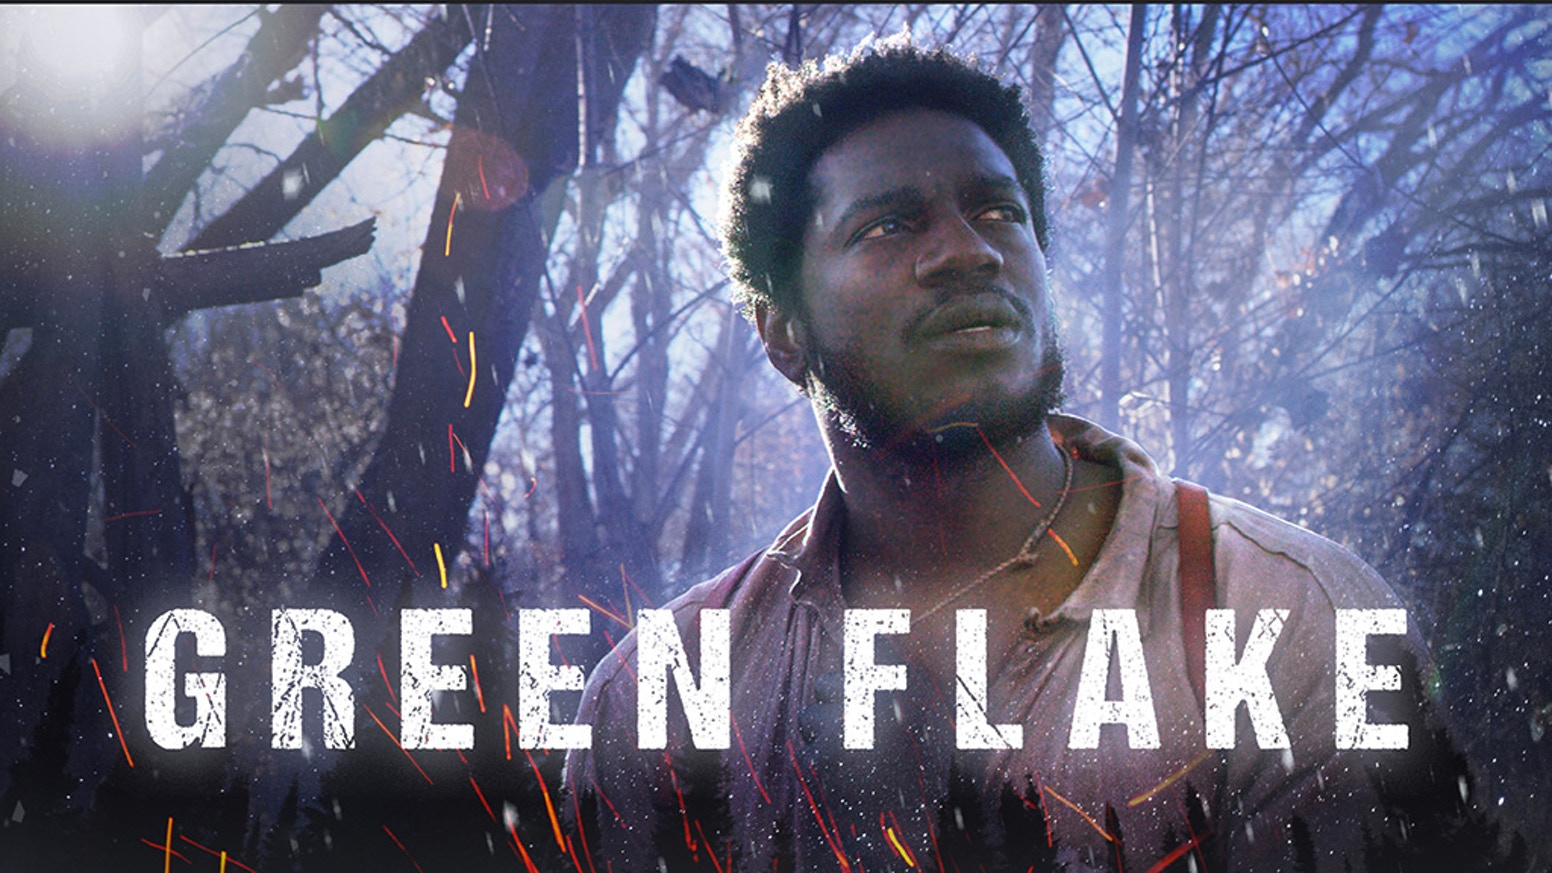 A film about a Southern slave who trekked thousands of miles and rose to become a Western hero